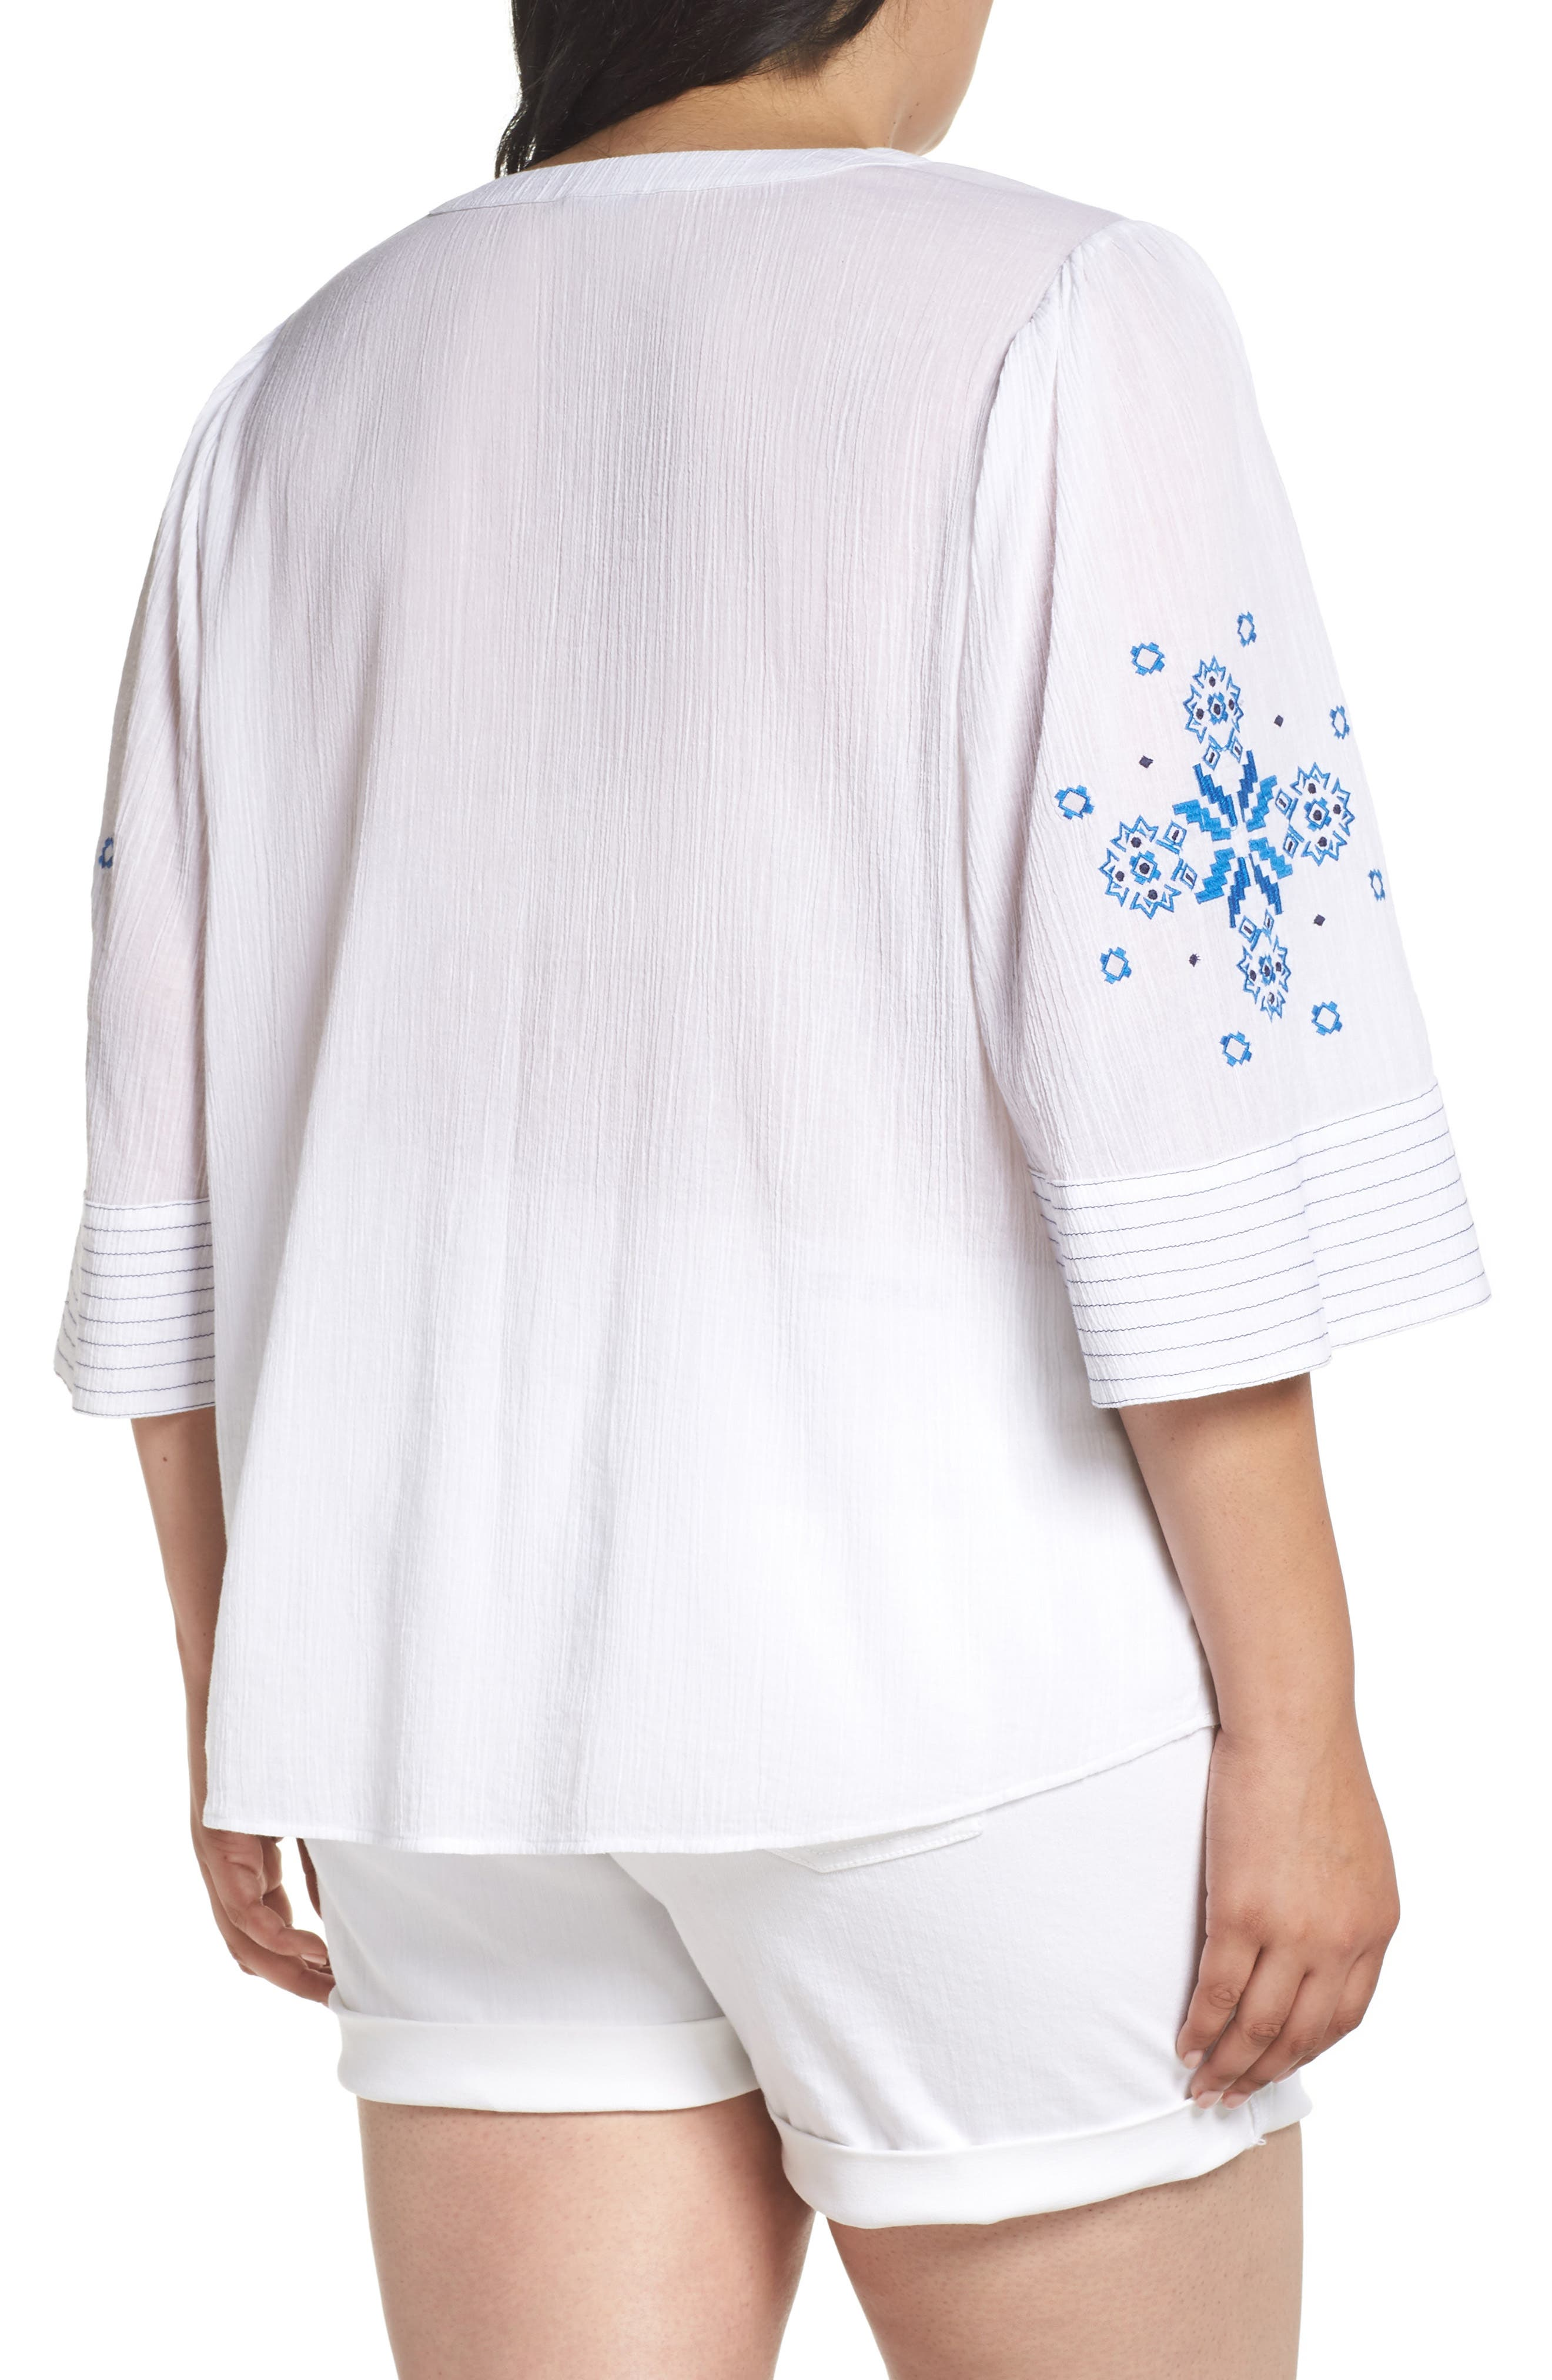 VINCE CAMUTO,                             Bell Sleeve Embroidered Top,                             Alternate thumbnail 2, color,                             145